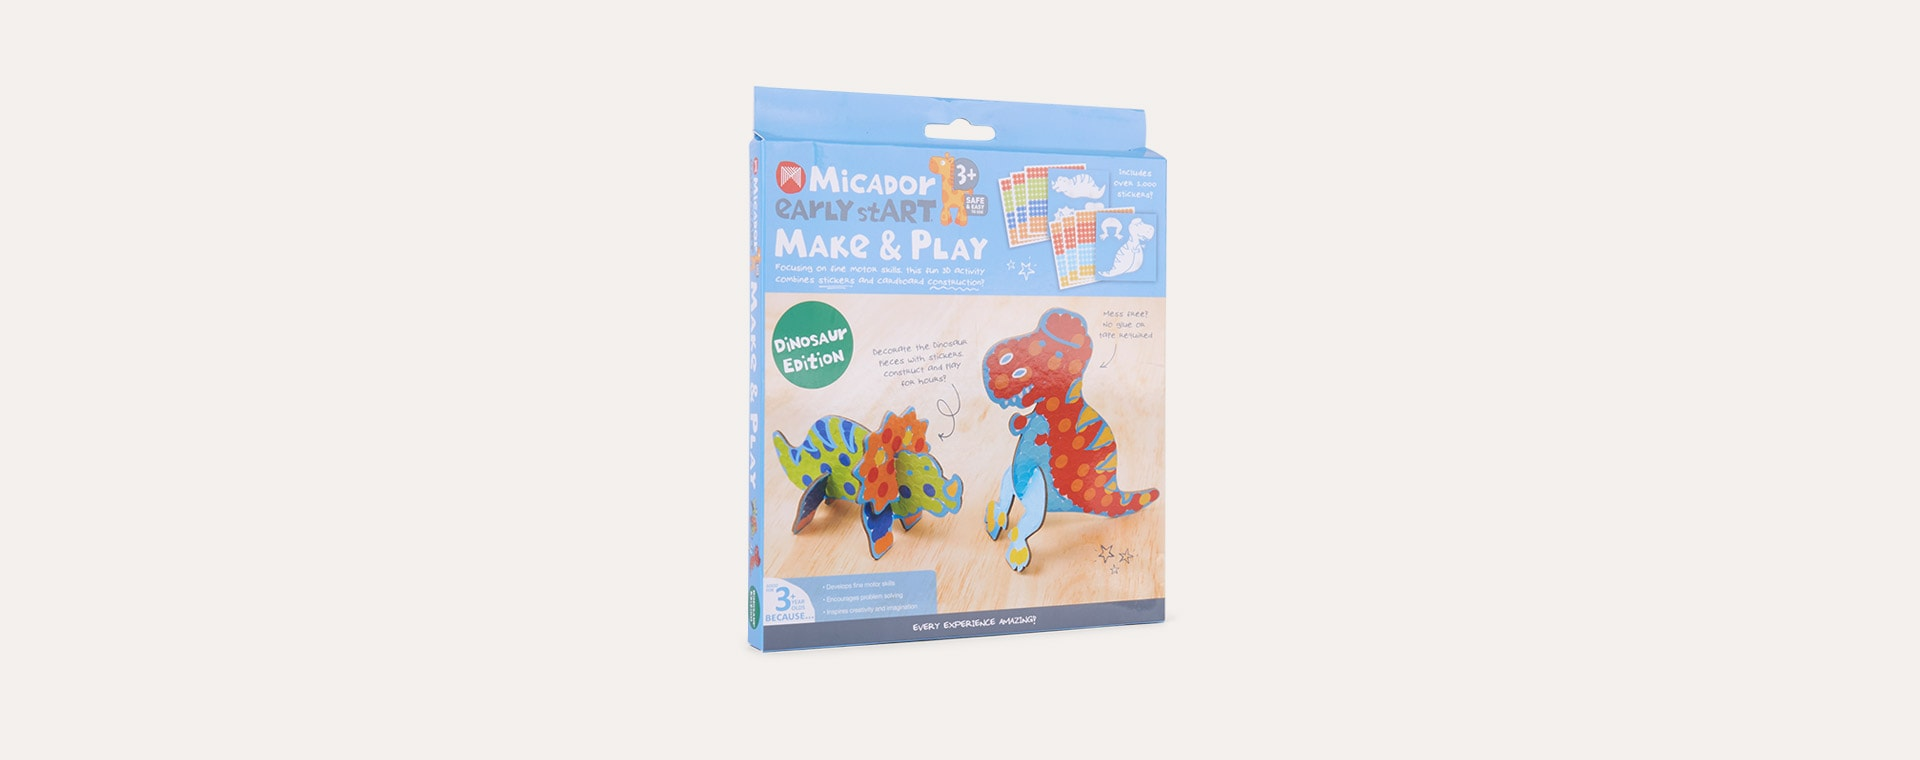 Dino Edition Micador Early stART Make & Play